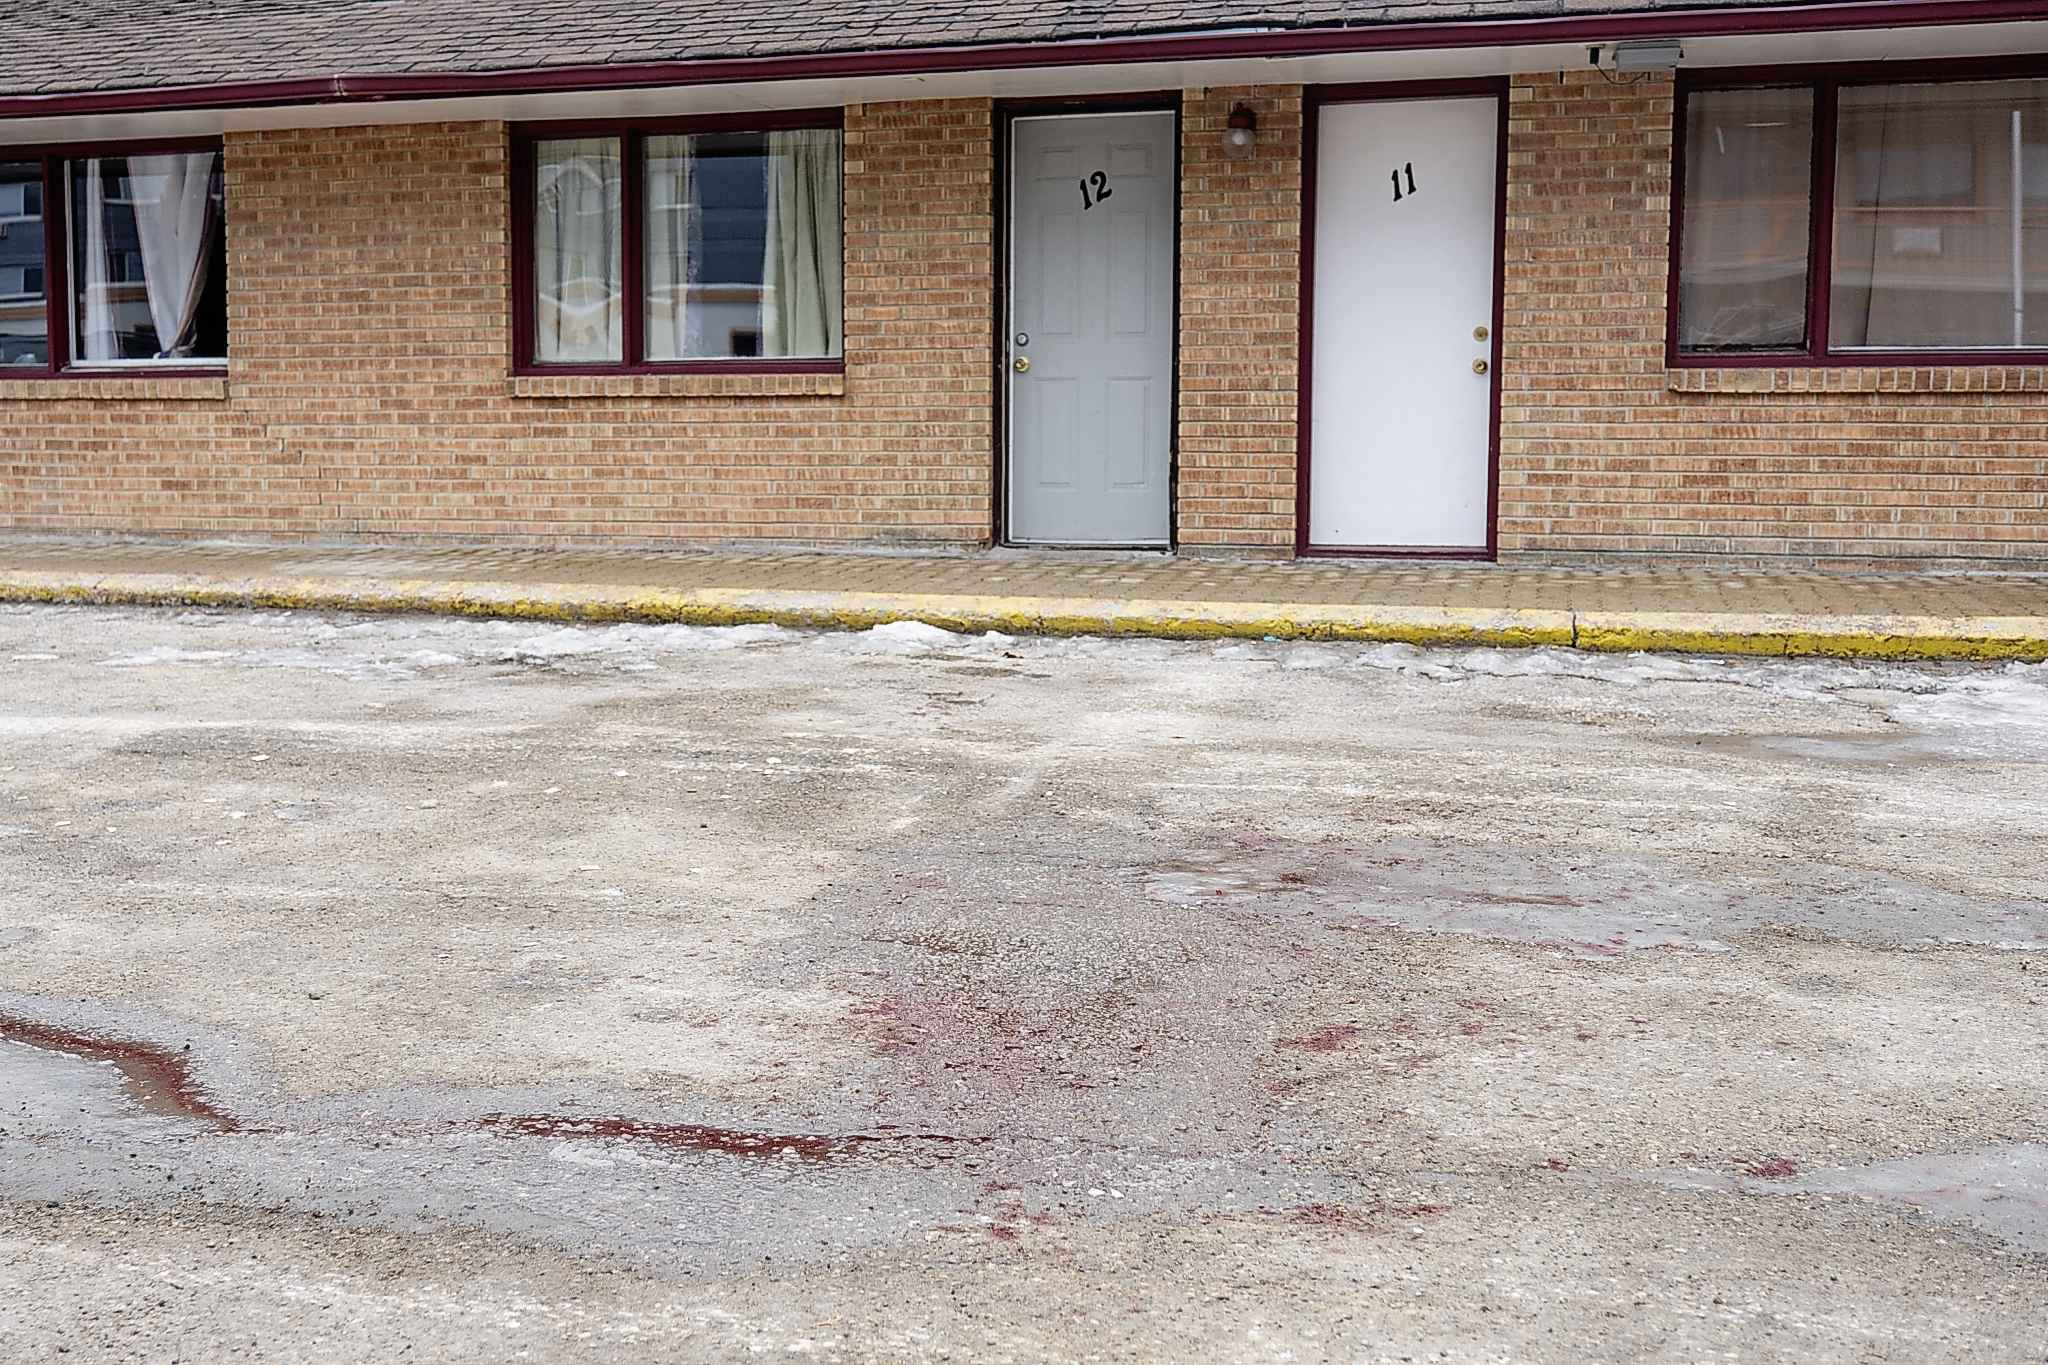 Blood stains the parking lot of the Capri Motel on Pembina Highway where a violent dog attack occurred early Saturday morning. (Daniel Crump / Winnipeg Free Press)</p>